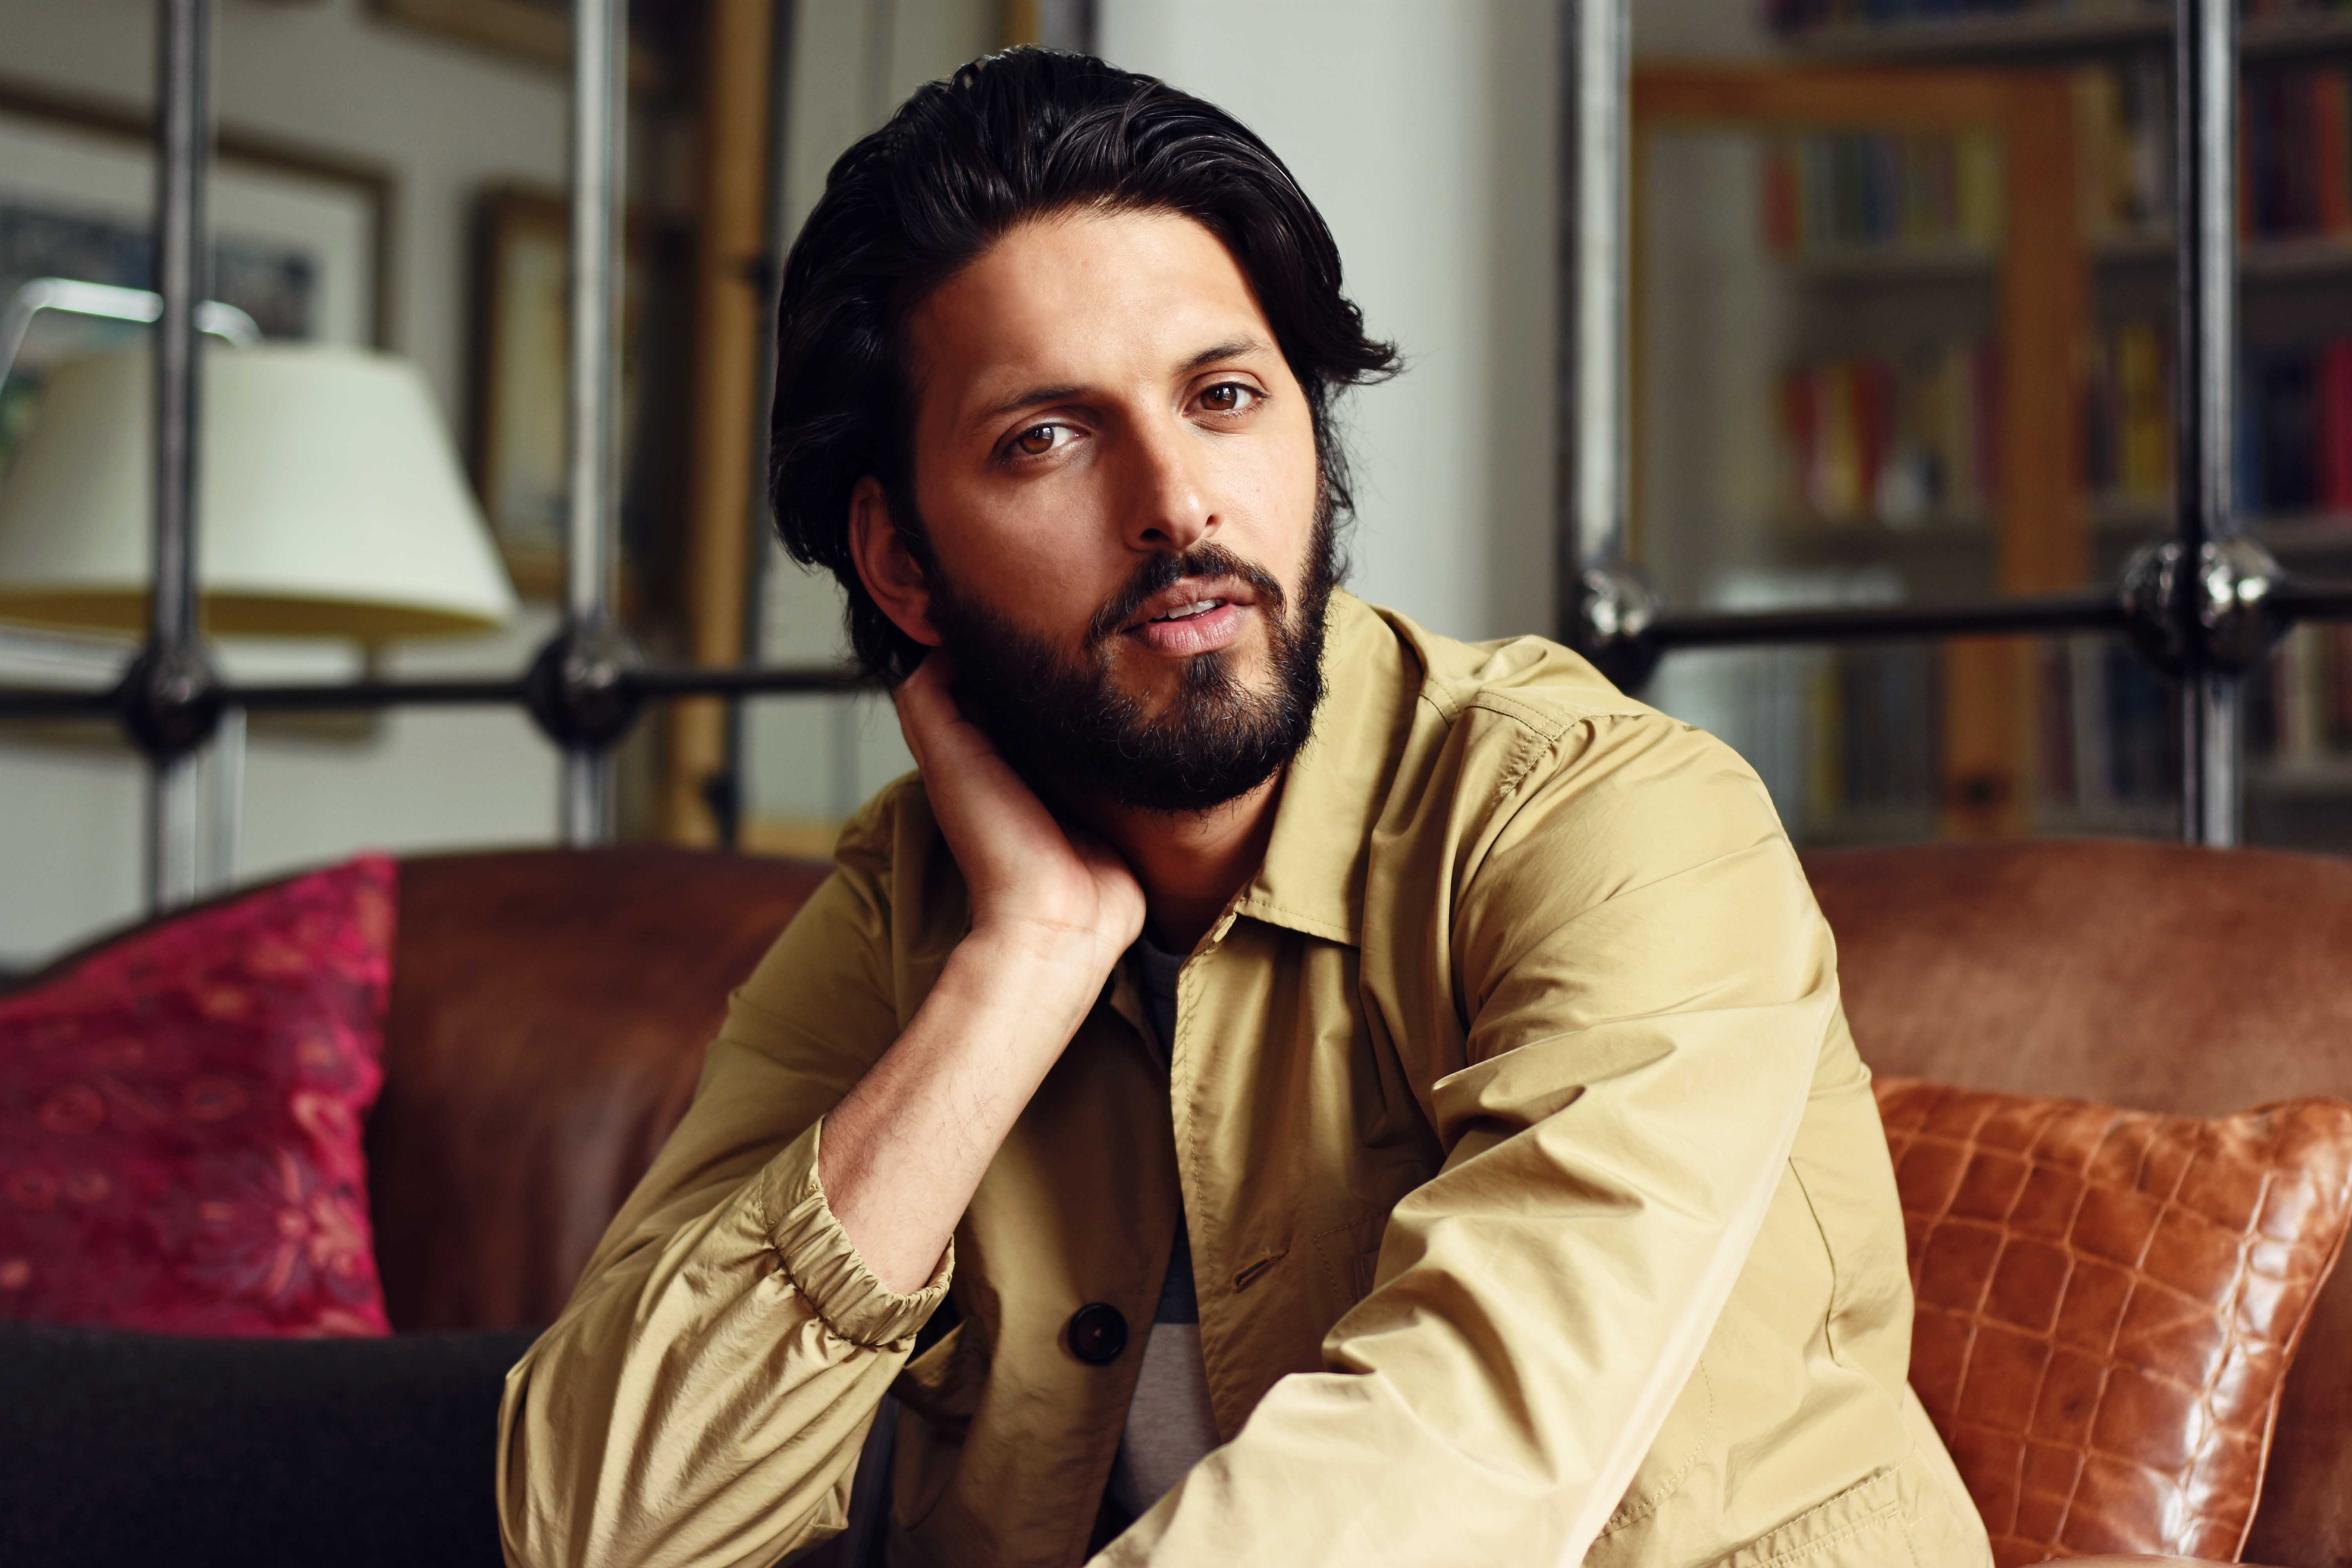 shazad latif ordinary liesshazad latif instagram, shazad latif black mirror, shazad latif, shazad latif actor, shazad latif penny dreadful, shazad latif height, shazad latif twitter, shazad latif photos, shazad latif married, shazad latif ordinary lies, shazad latif gay, shazad latif dundee, shazad latif facebook, shazad latif dr jekyll, shazad latif interview, shazad latif agent, shazad latif partner, shazad latif parents